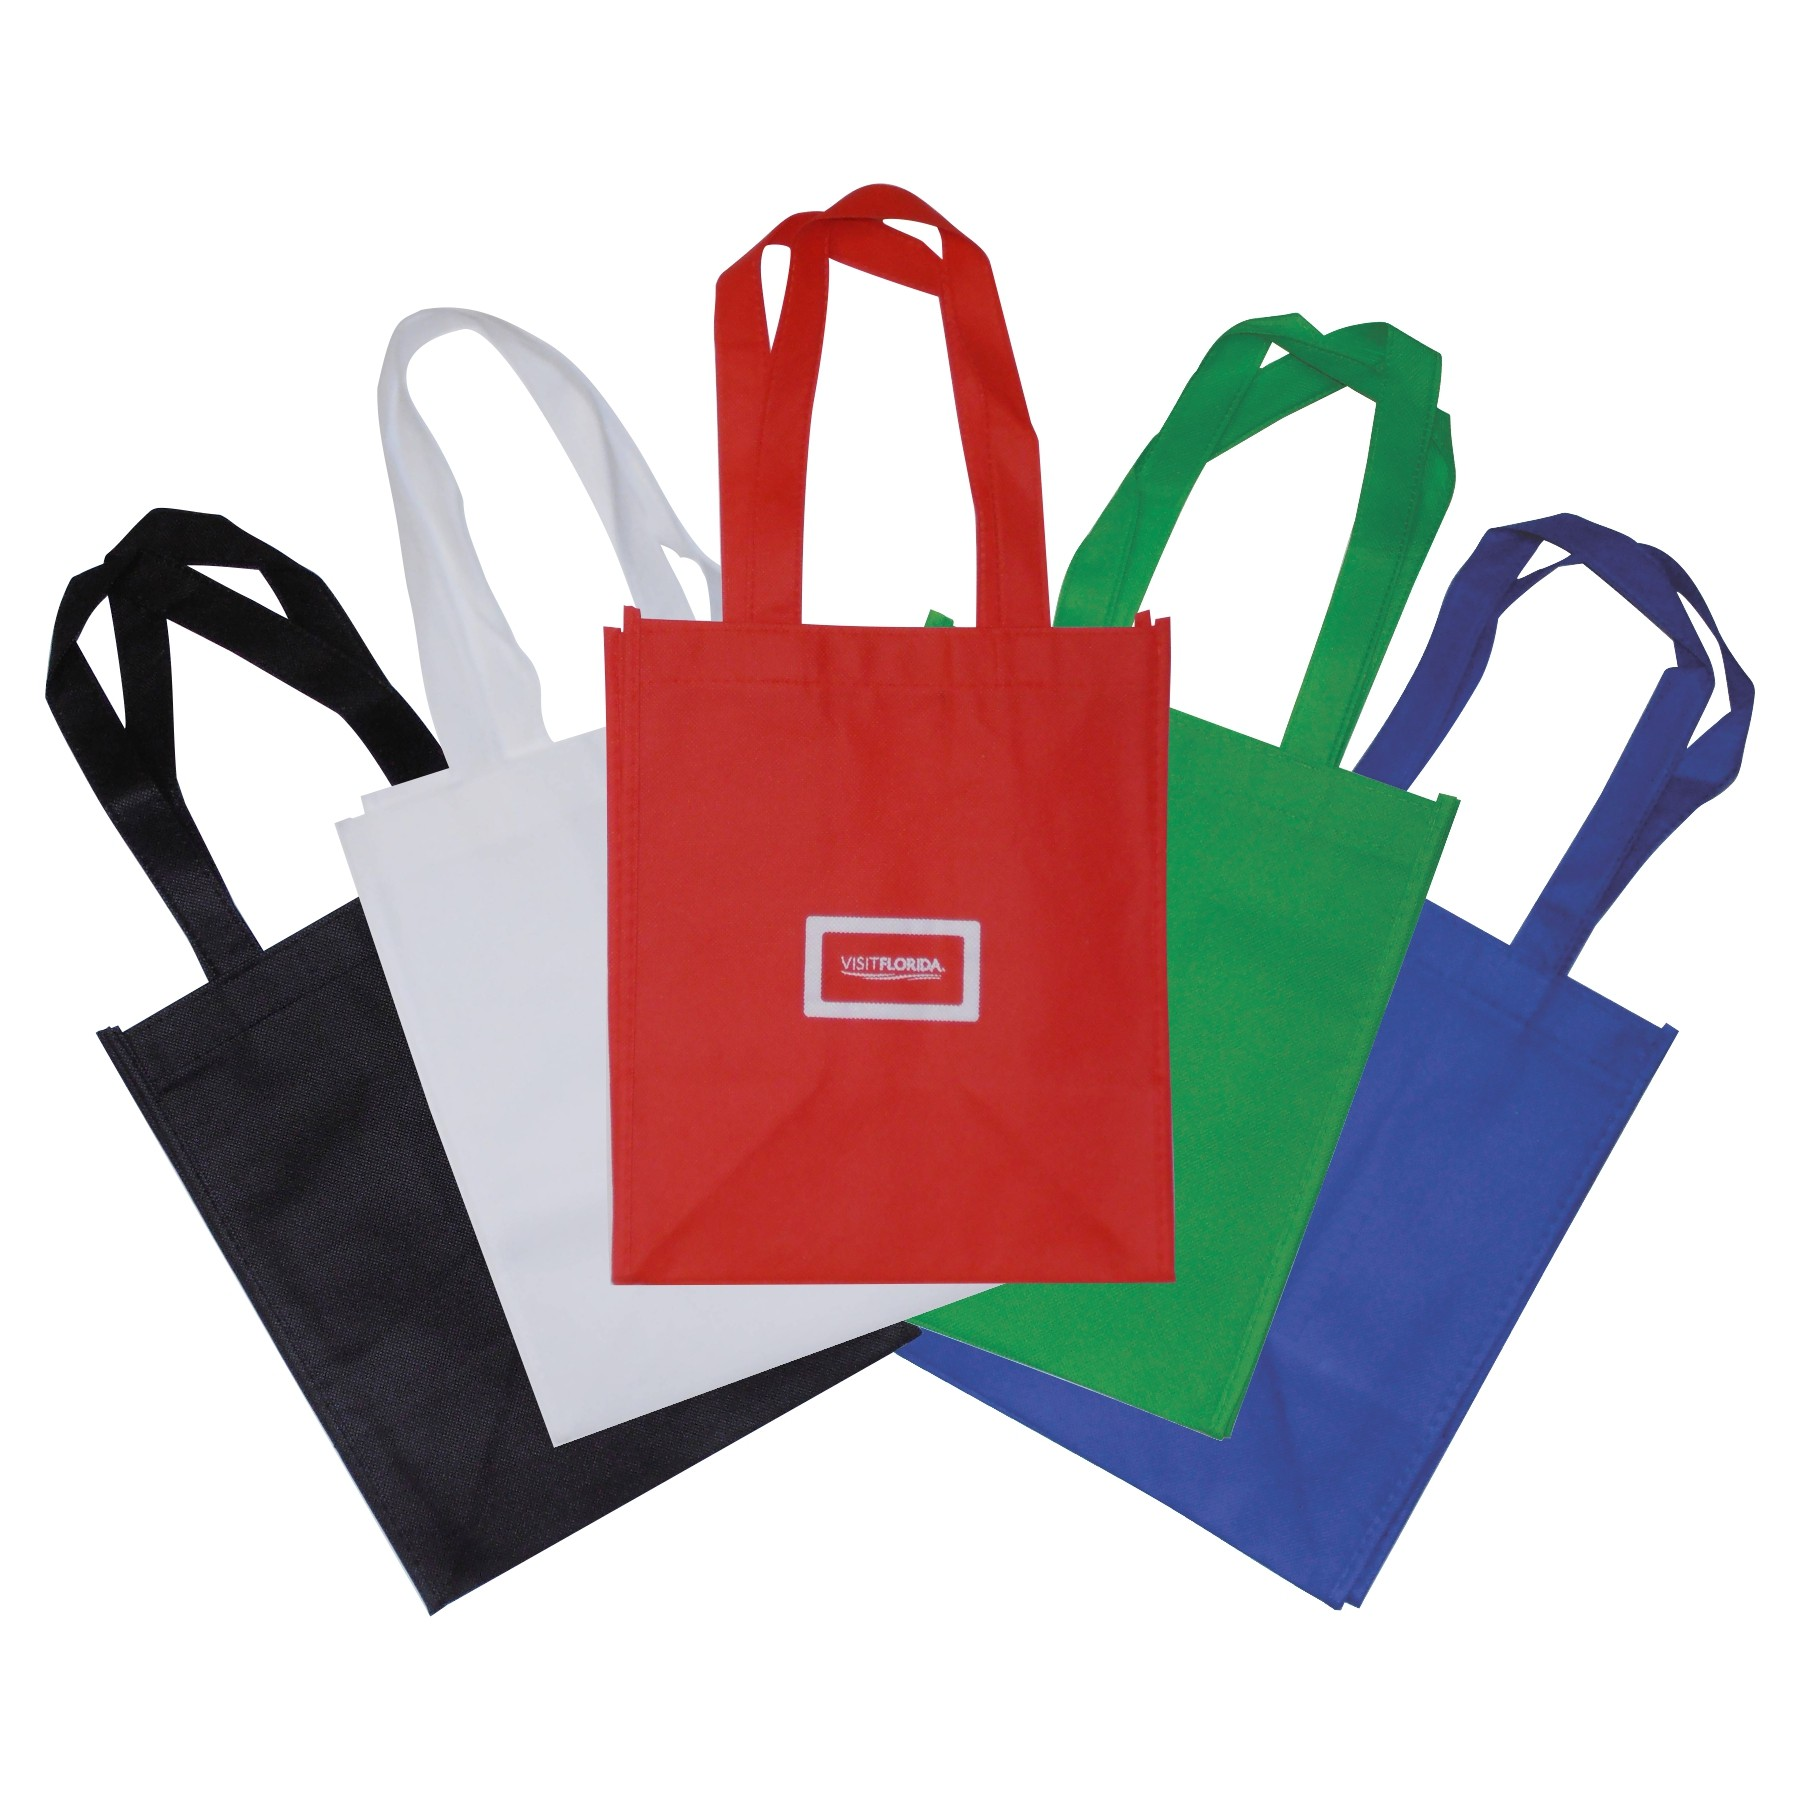 Mid-Size Tote ( 10-15 days)